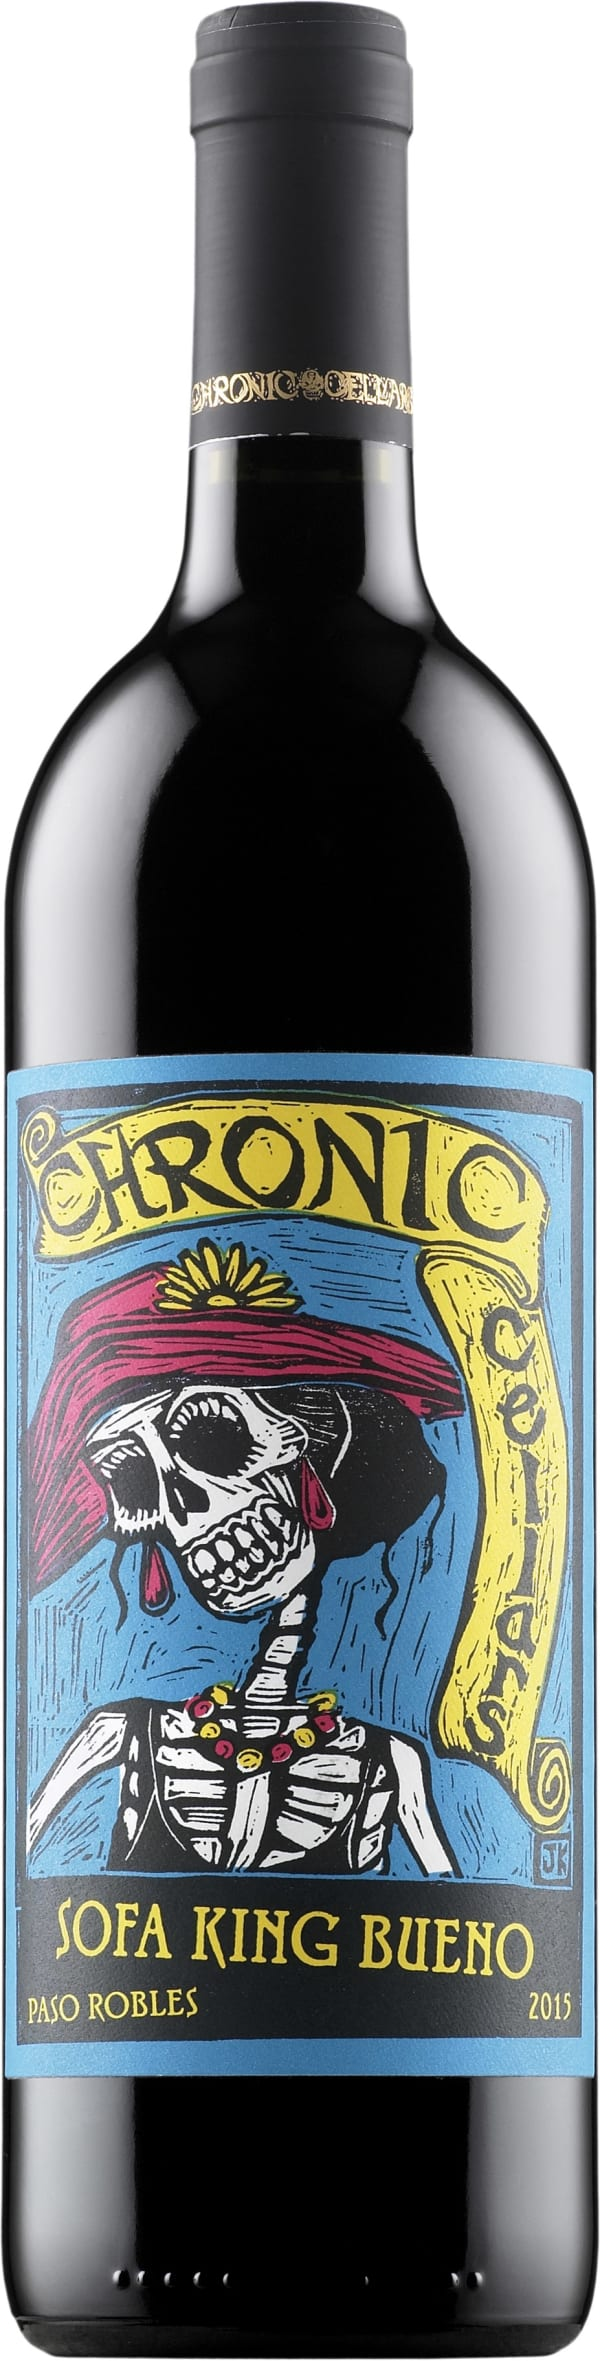 Chronic Cellars Sofa King Bueno 2015